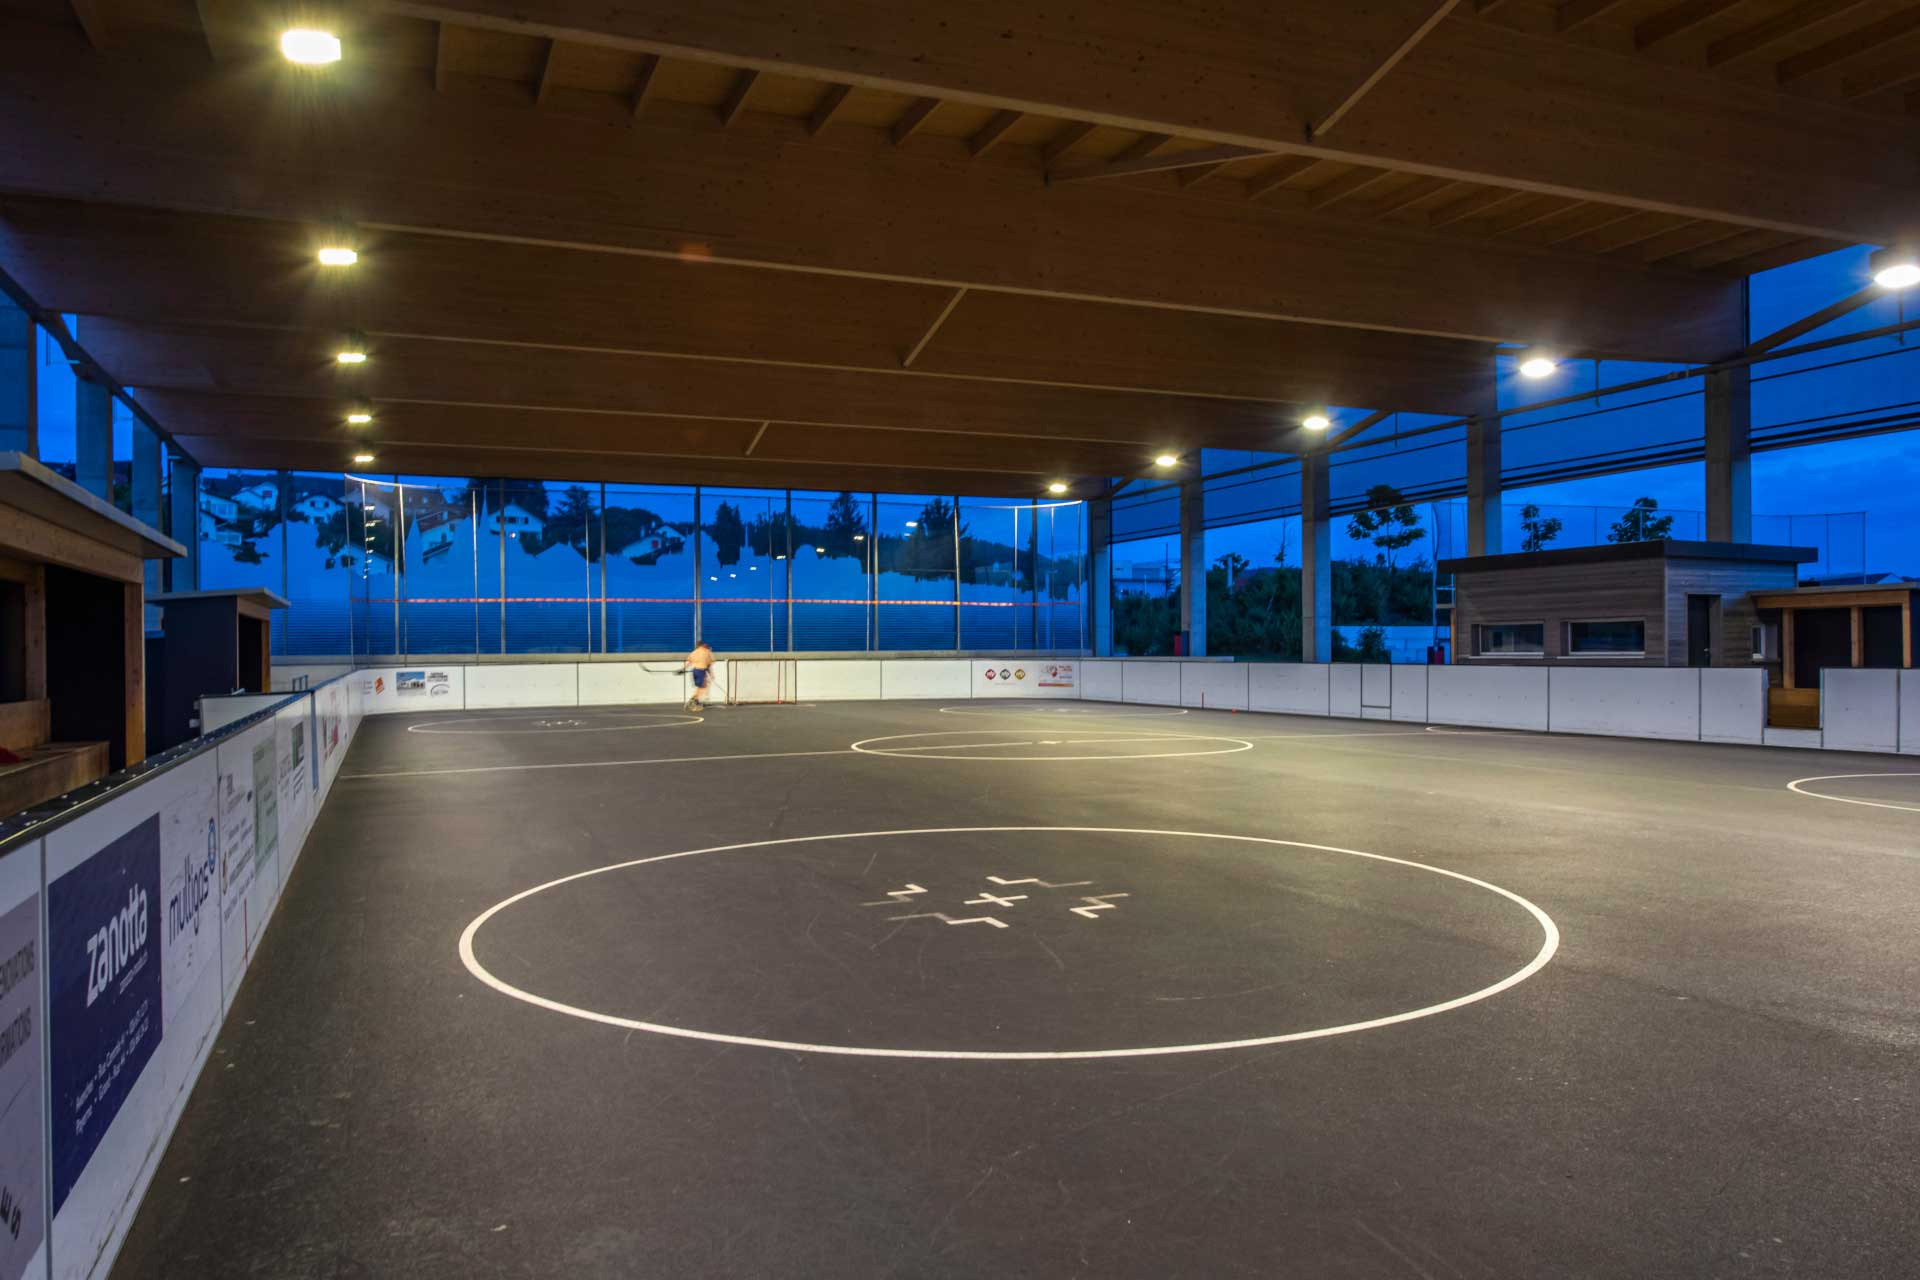 OMNIstar floodlights light the ice rink in Avenches so residents can practise their favourite sport when they want